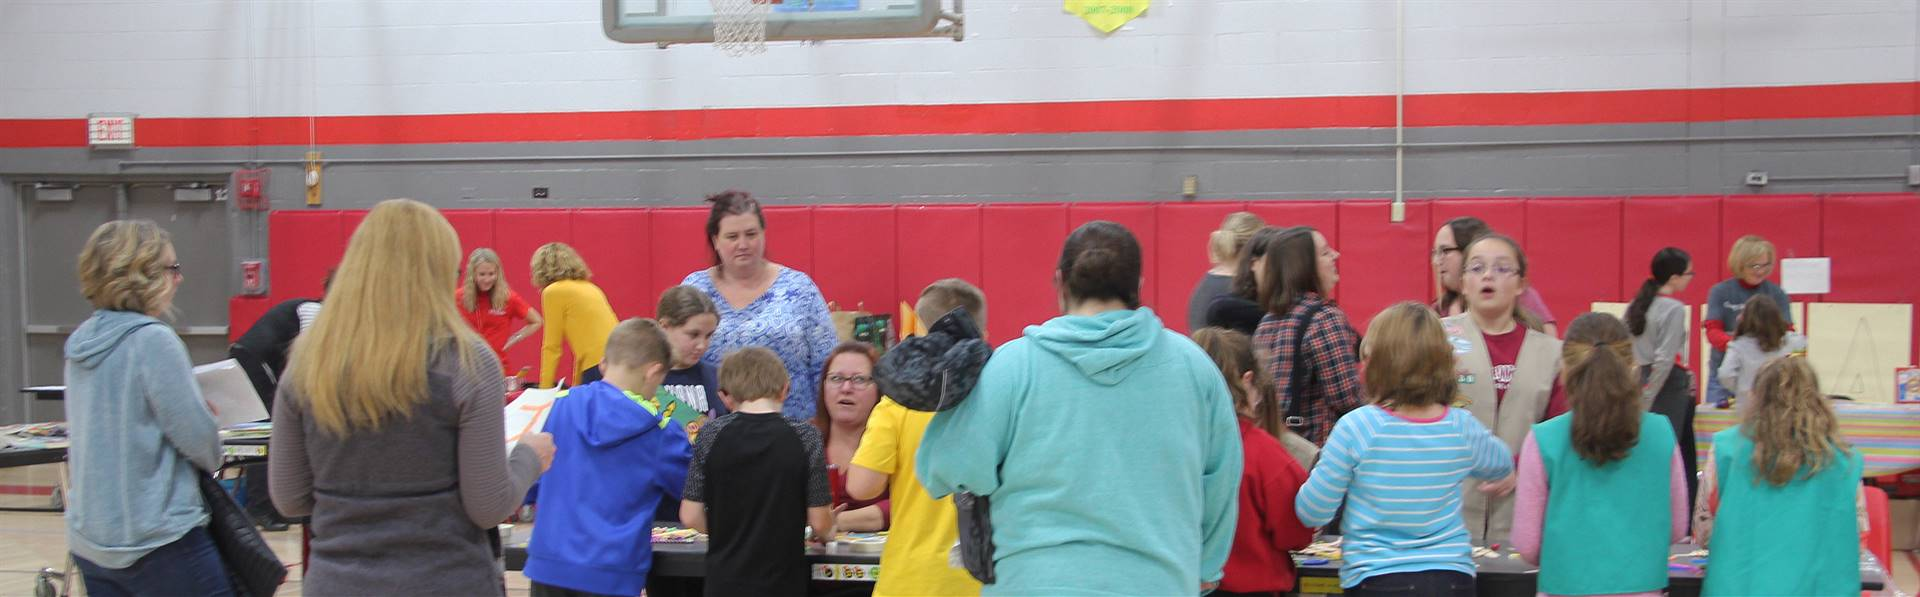 wide shot of people at girl scouts activity table